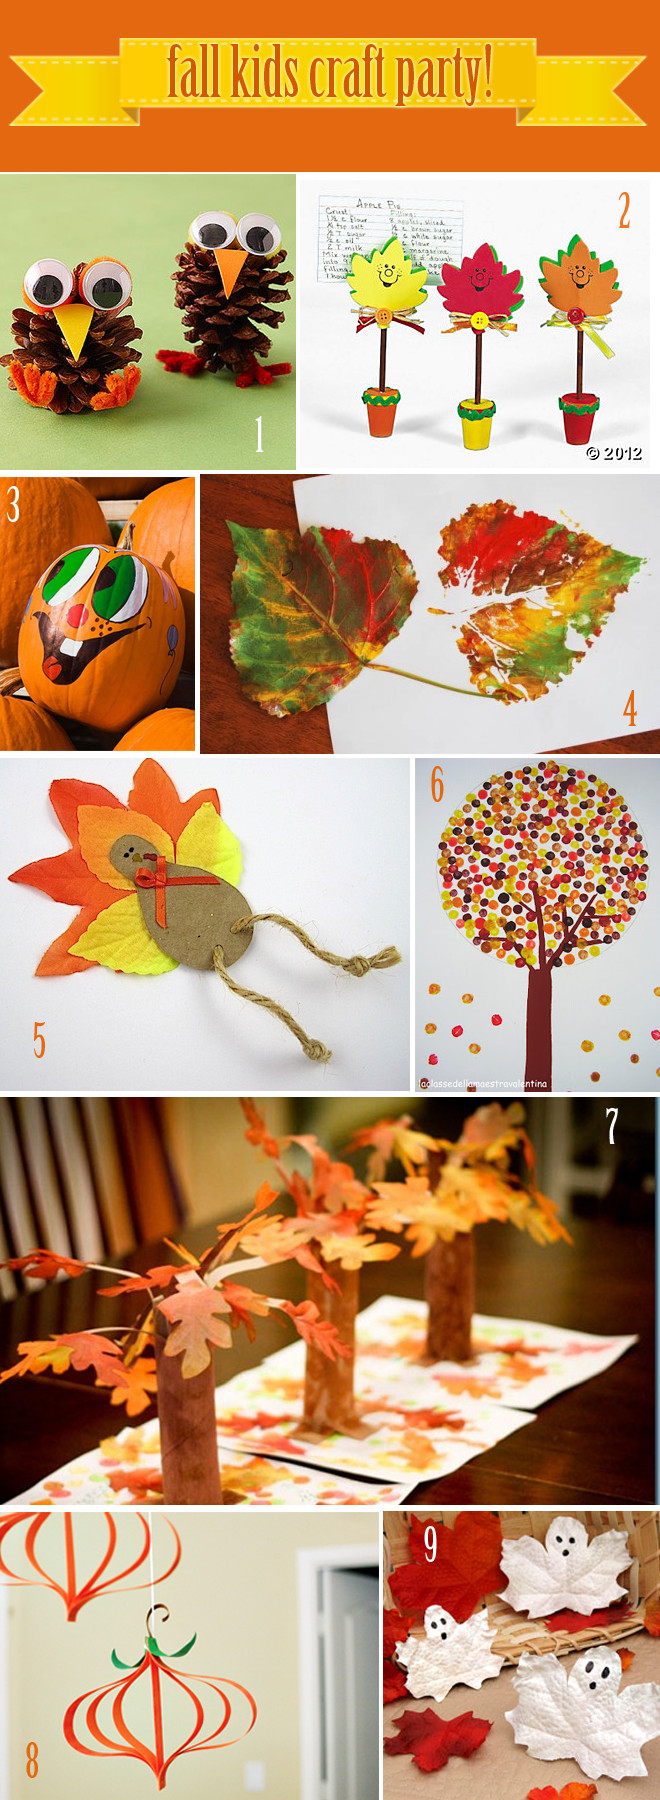 Best ideas about Fall Crafts Ideas For Kids . Save or Pin 9 Fall Craft Ideas For Kids Now.